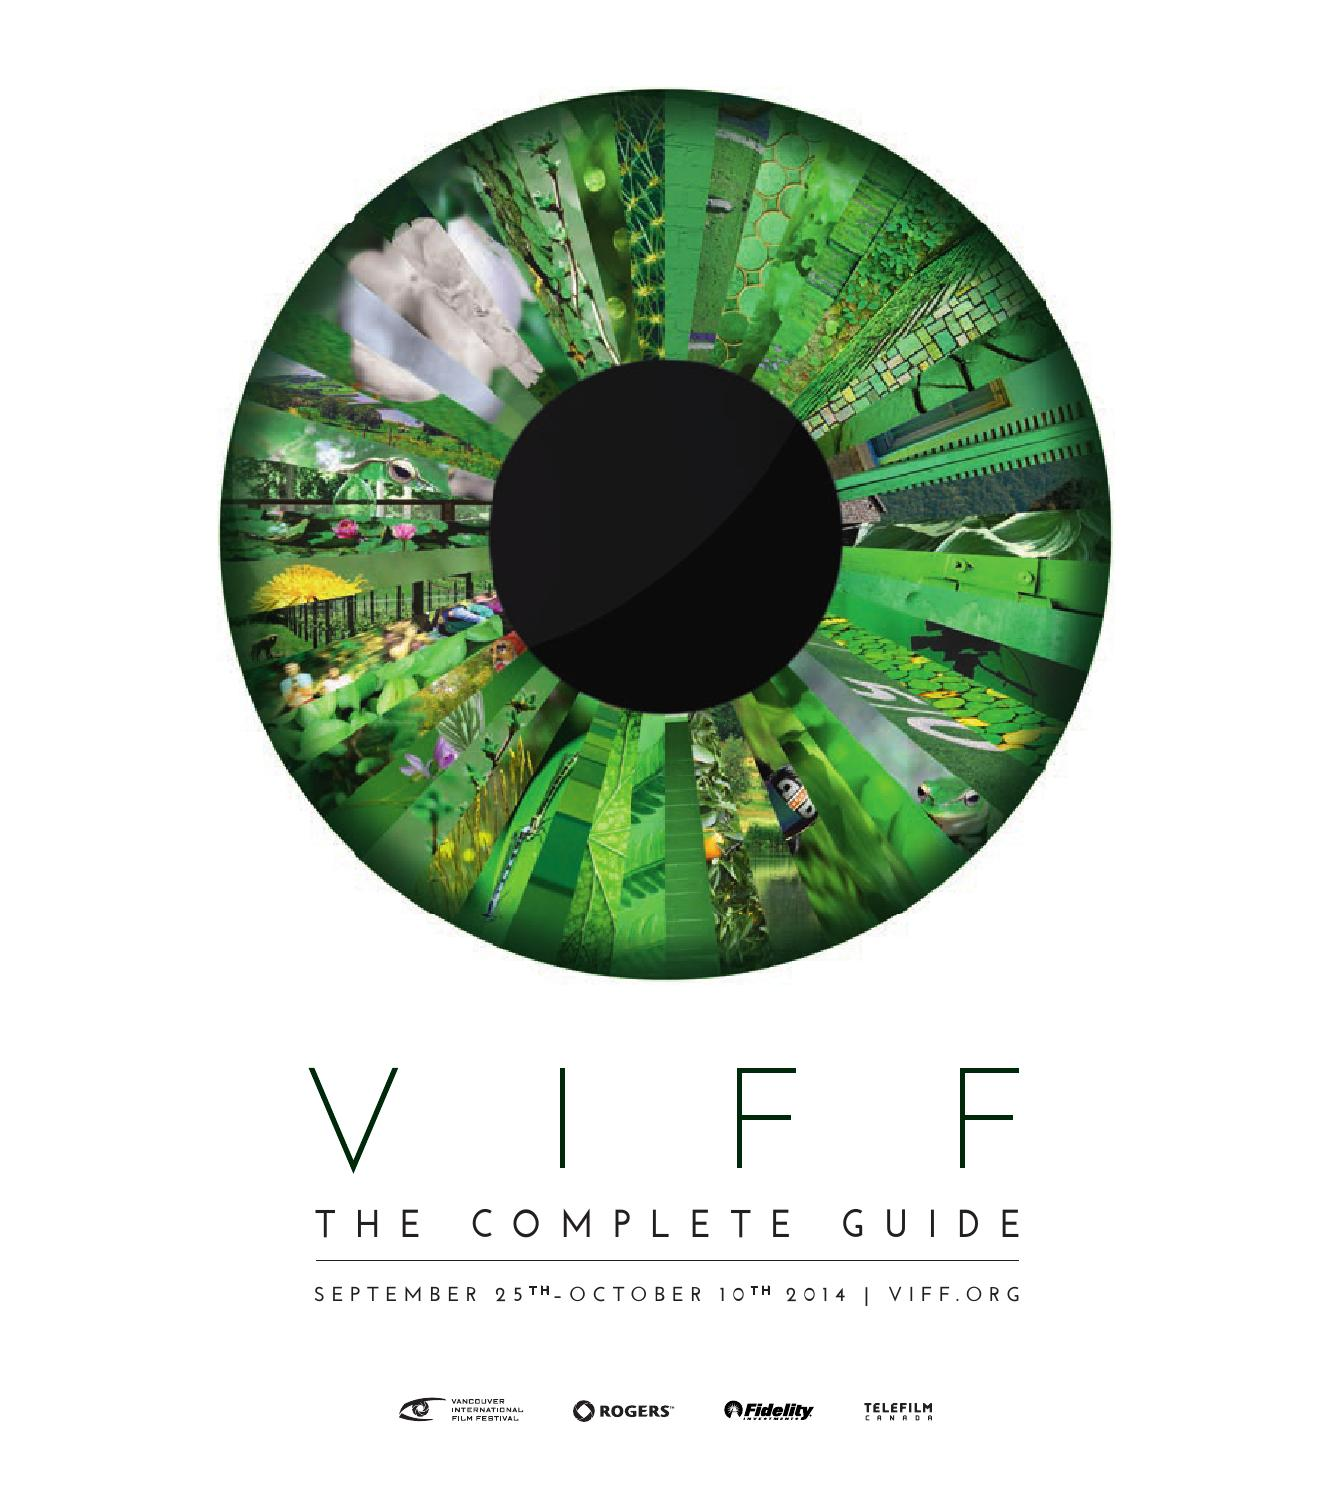 ae2d26929f6 VIFF 2014 Program Guide by Vancouver International Film Festival - issuu